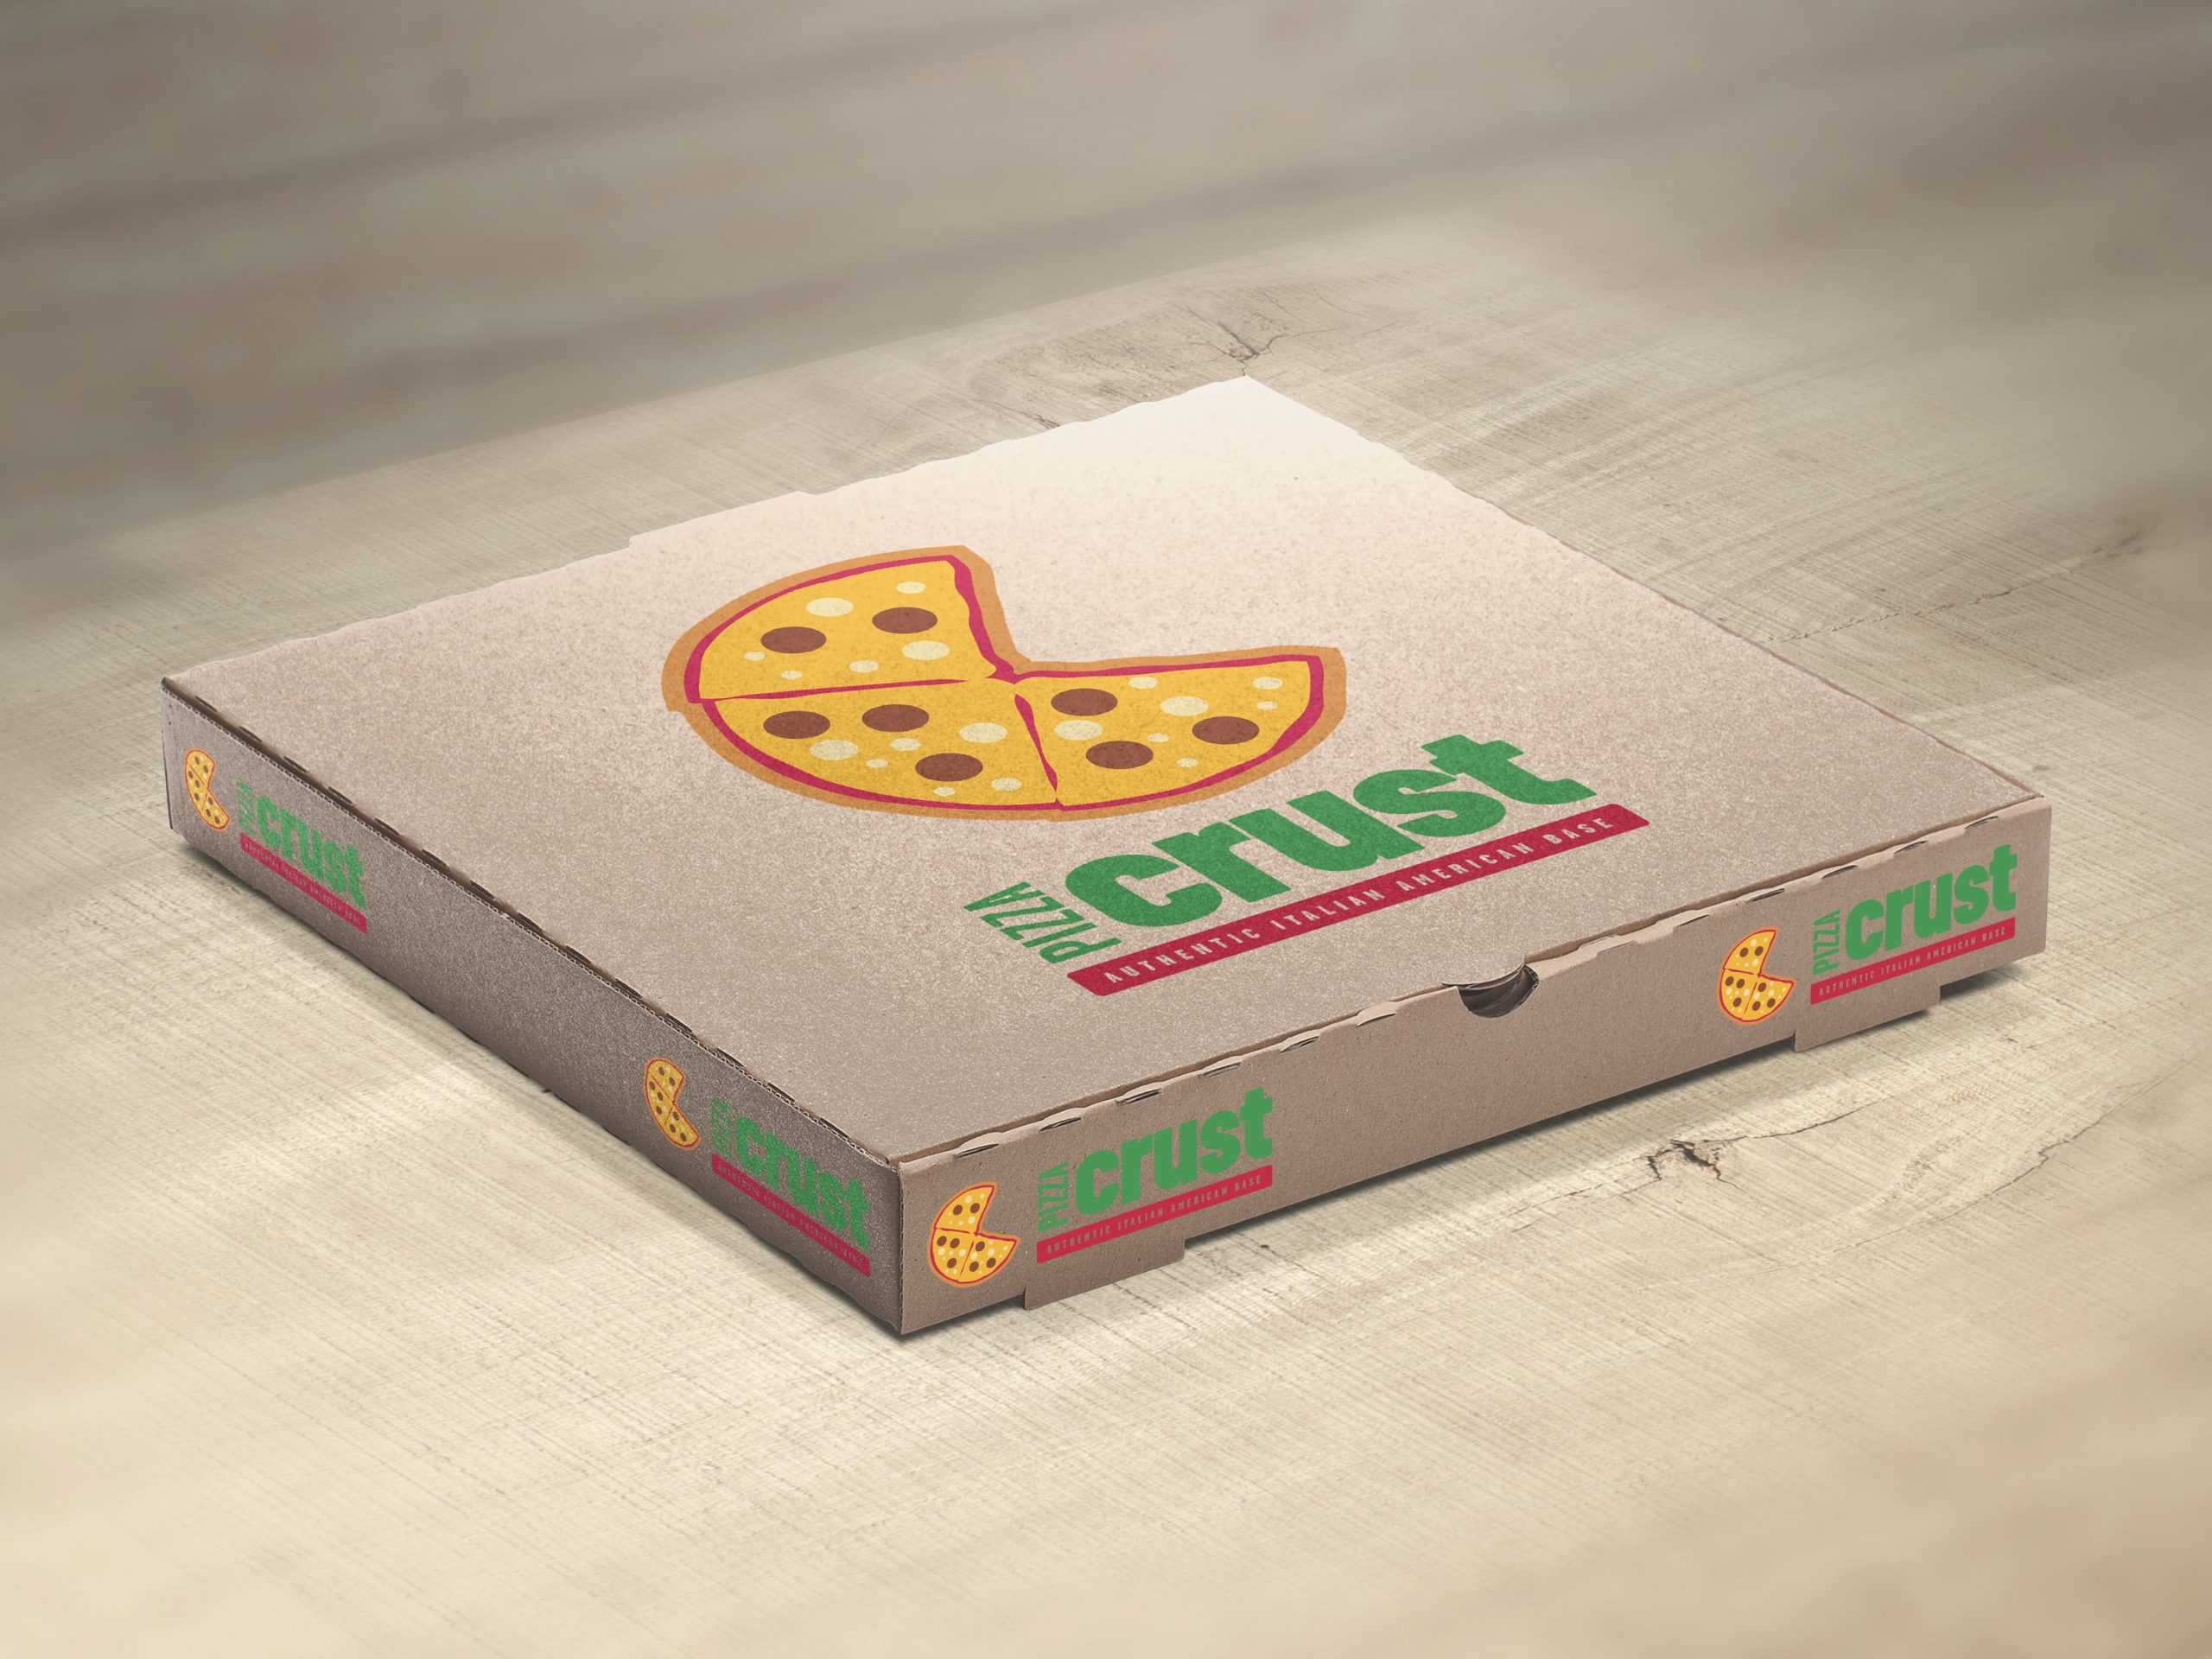 Pizza Crust company pizza box with graphic design on front by Sleeky